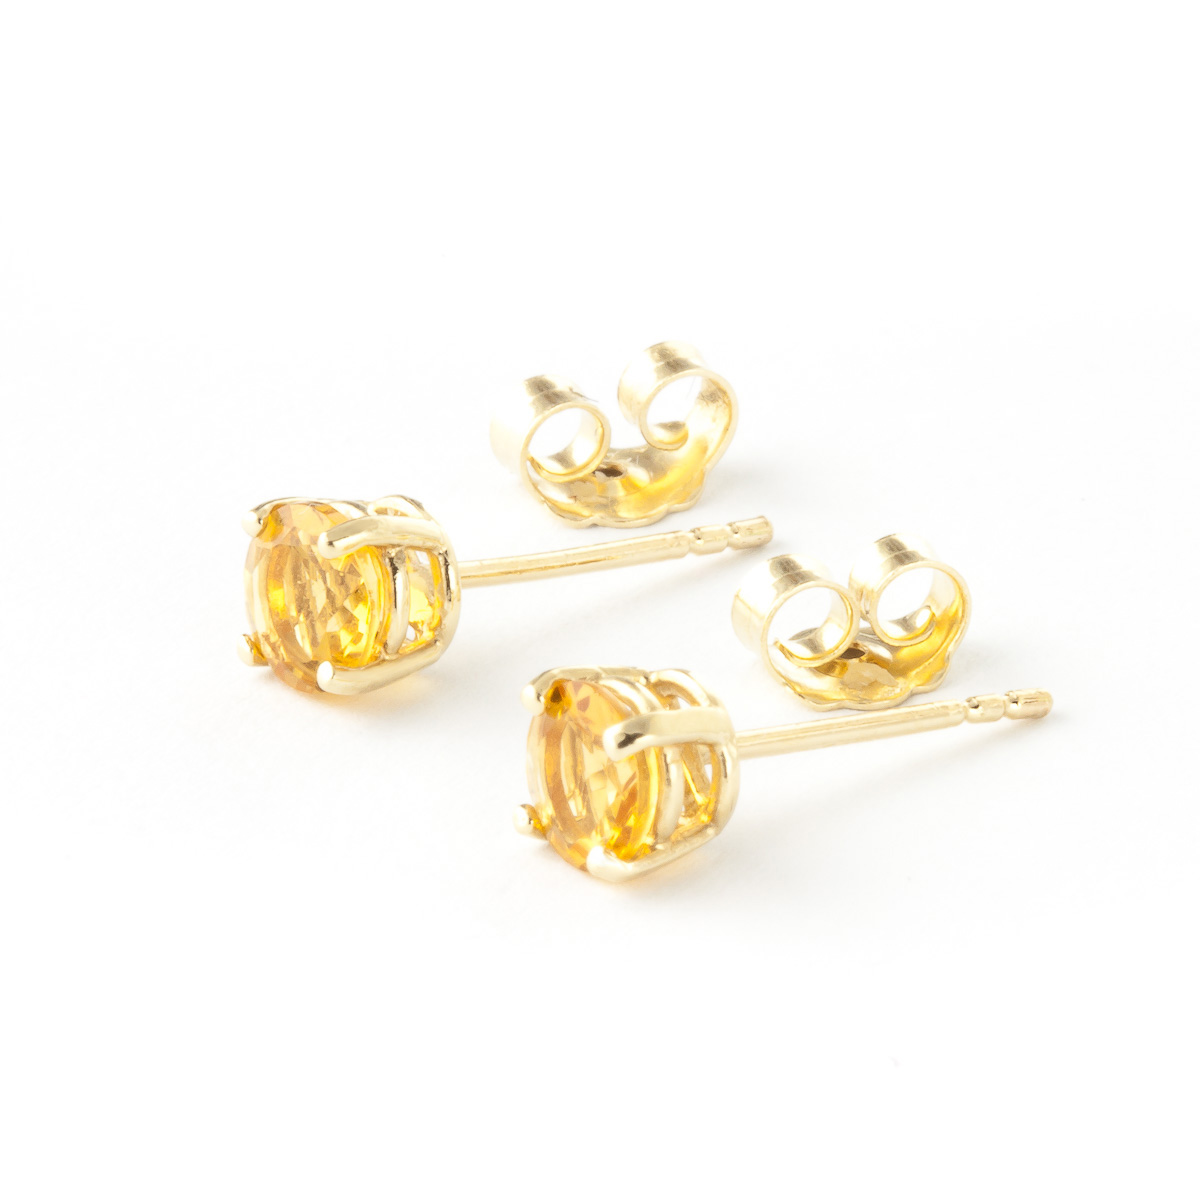 Citrine Stud Earrings 0.95ctw in 9ct Gold